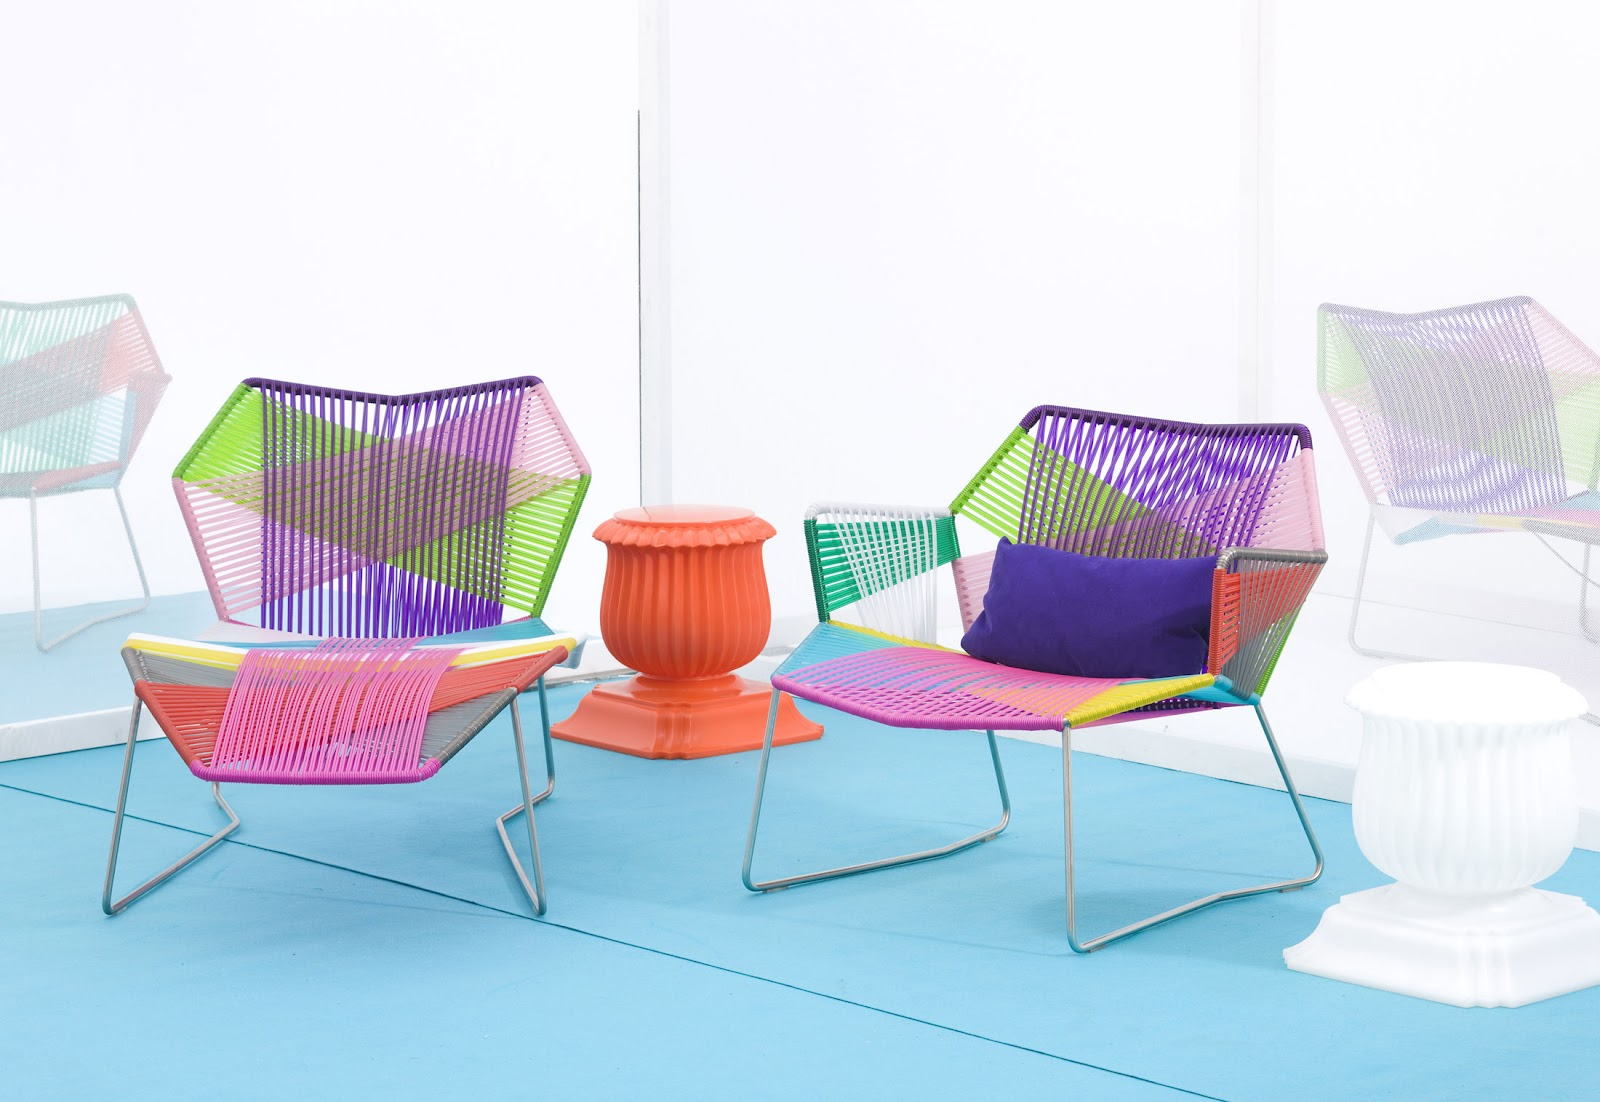 Tropicalia armchair by Moroso Designer furniture fitted